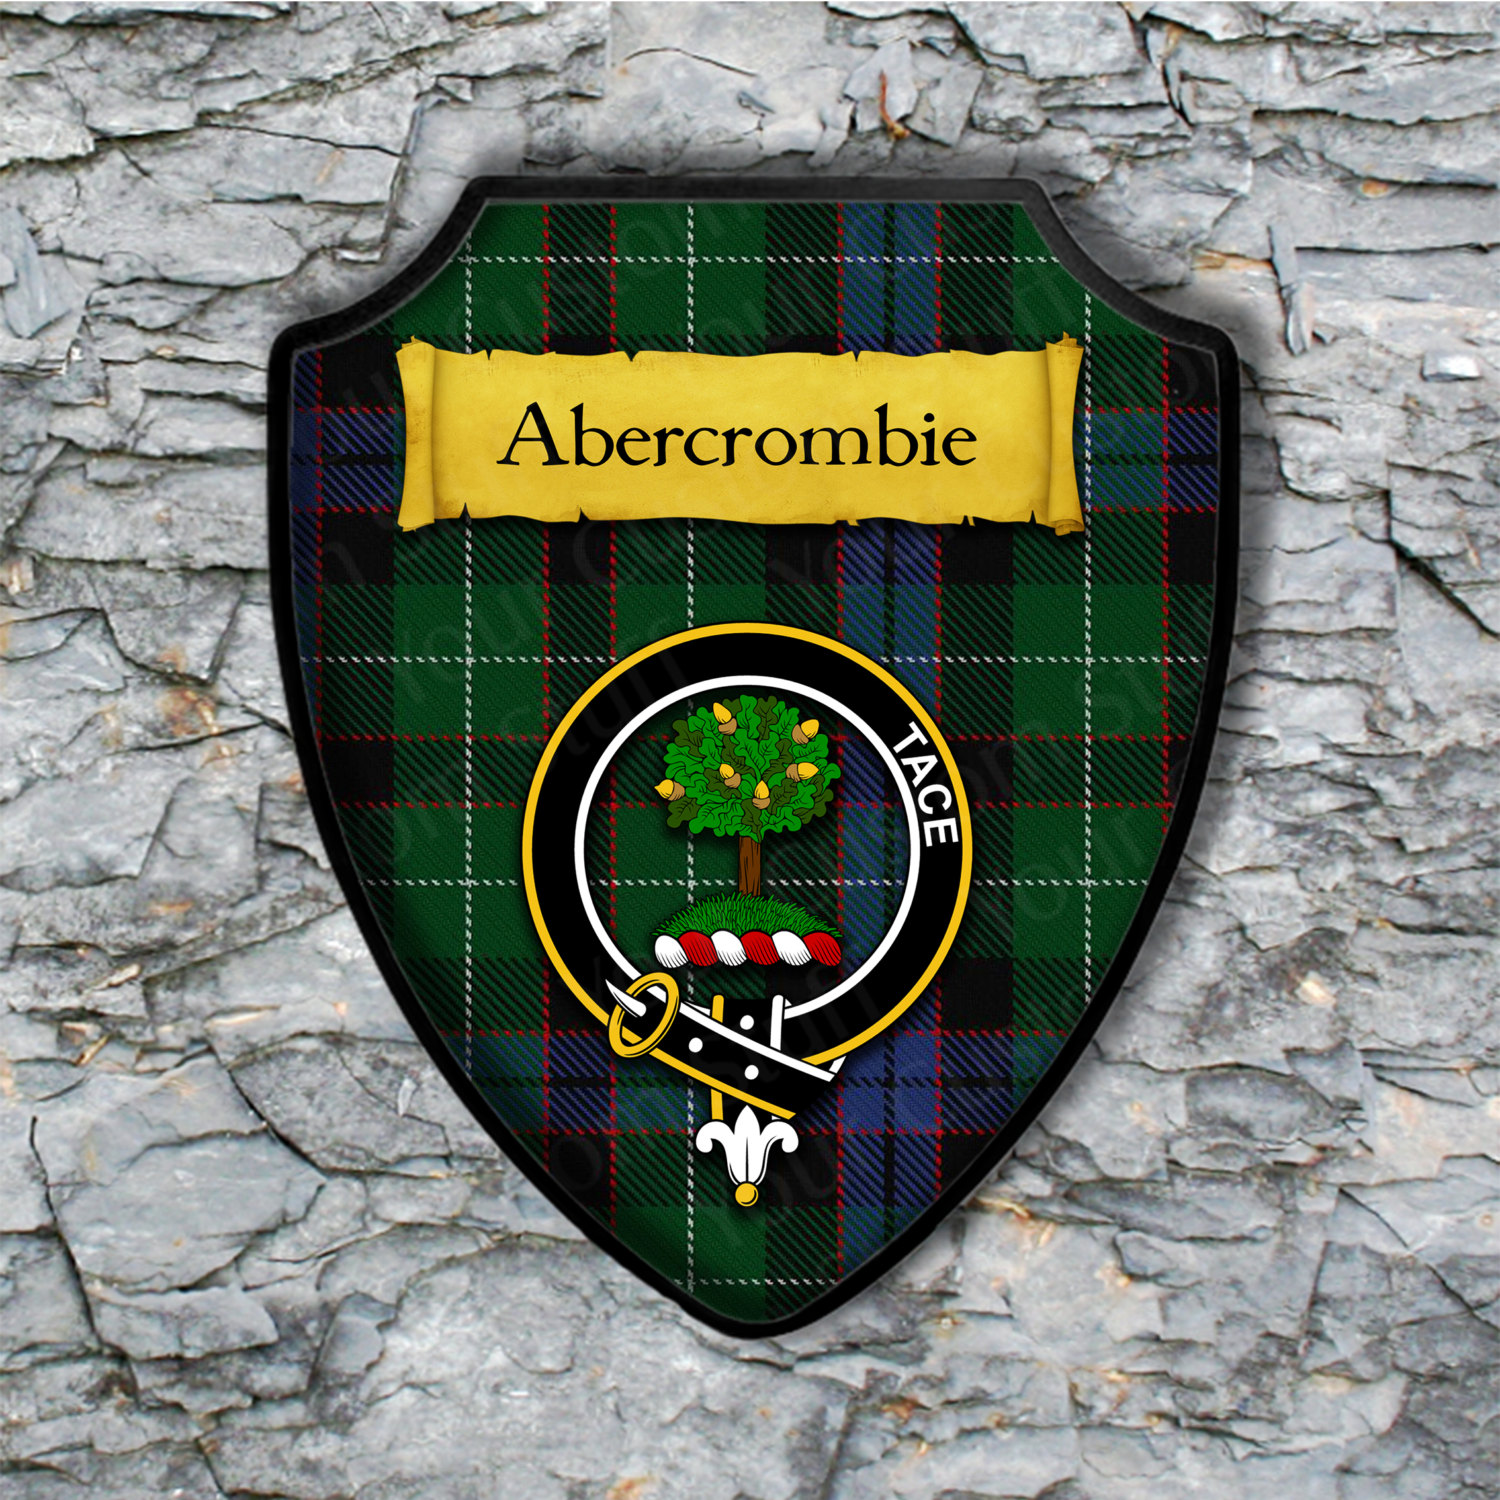 Abercrombie Shield Plaque with Scottish Clan Coat of Arms Badge on Clan Plaid Tartan Background Wall Art